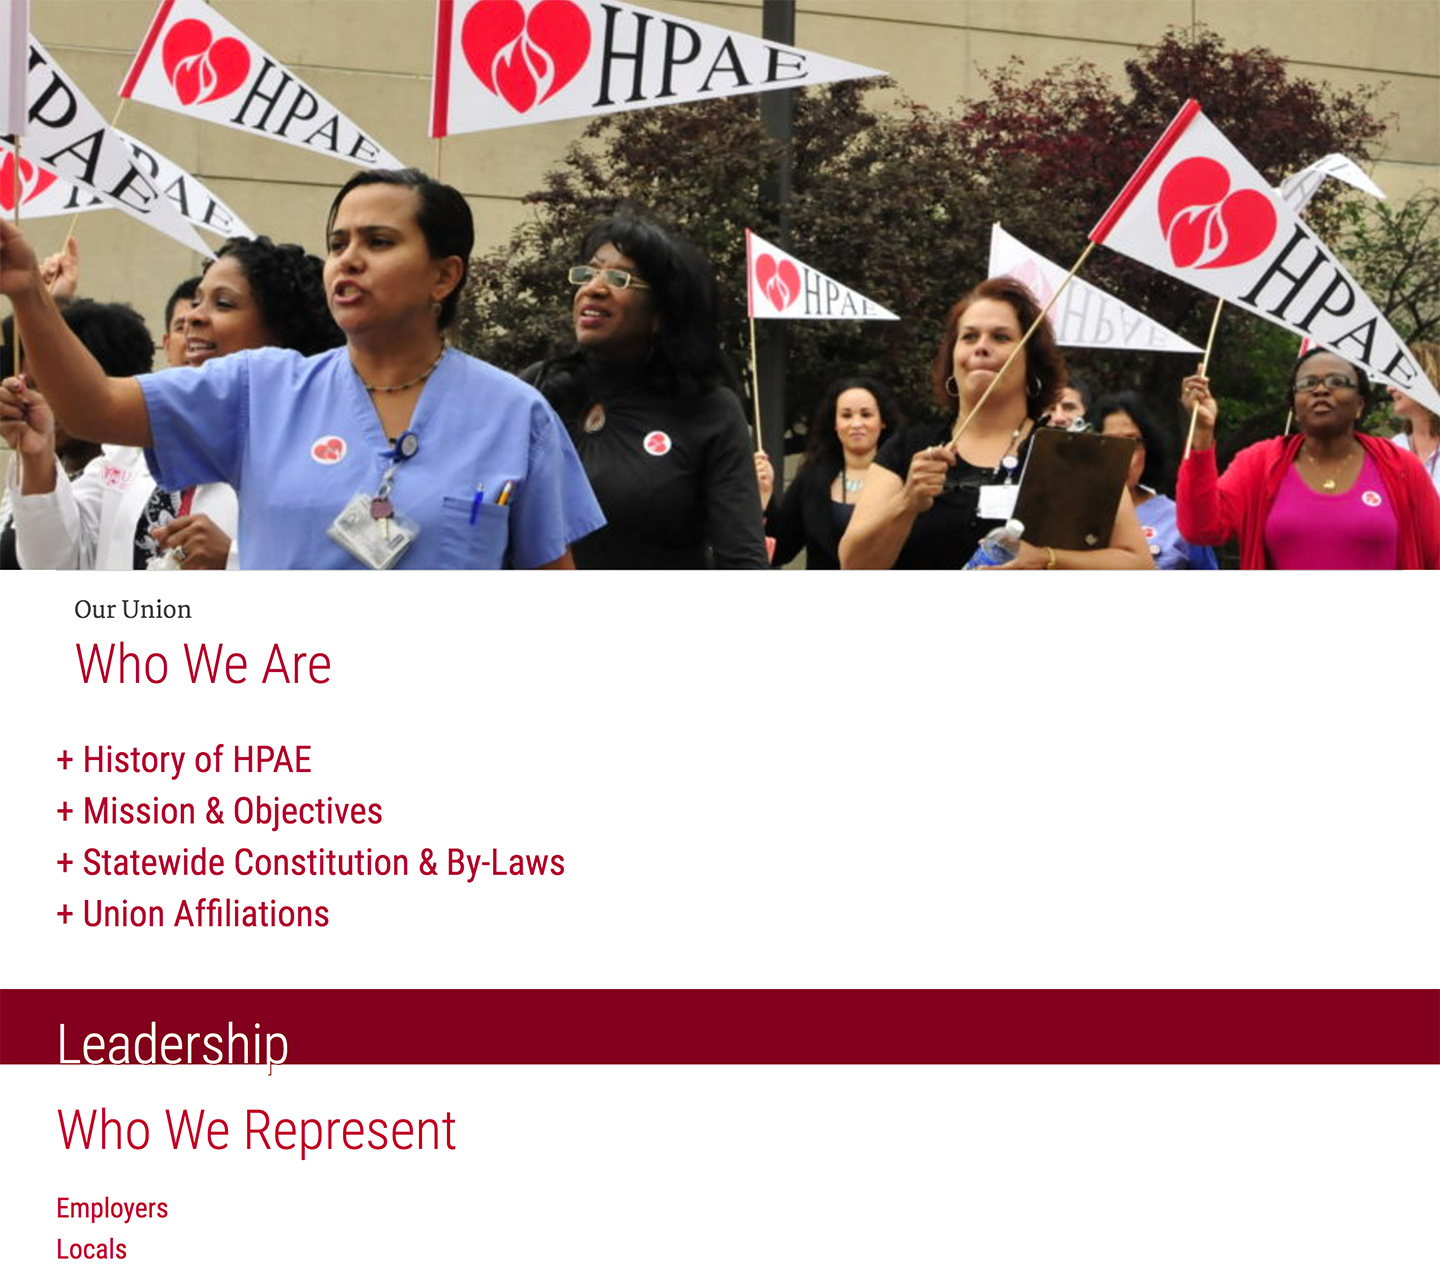 HPAE - Health Professionals and Allied Employees: Who We Are